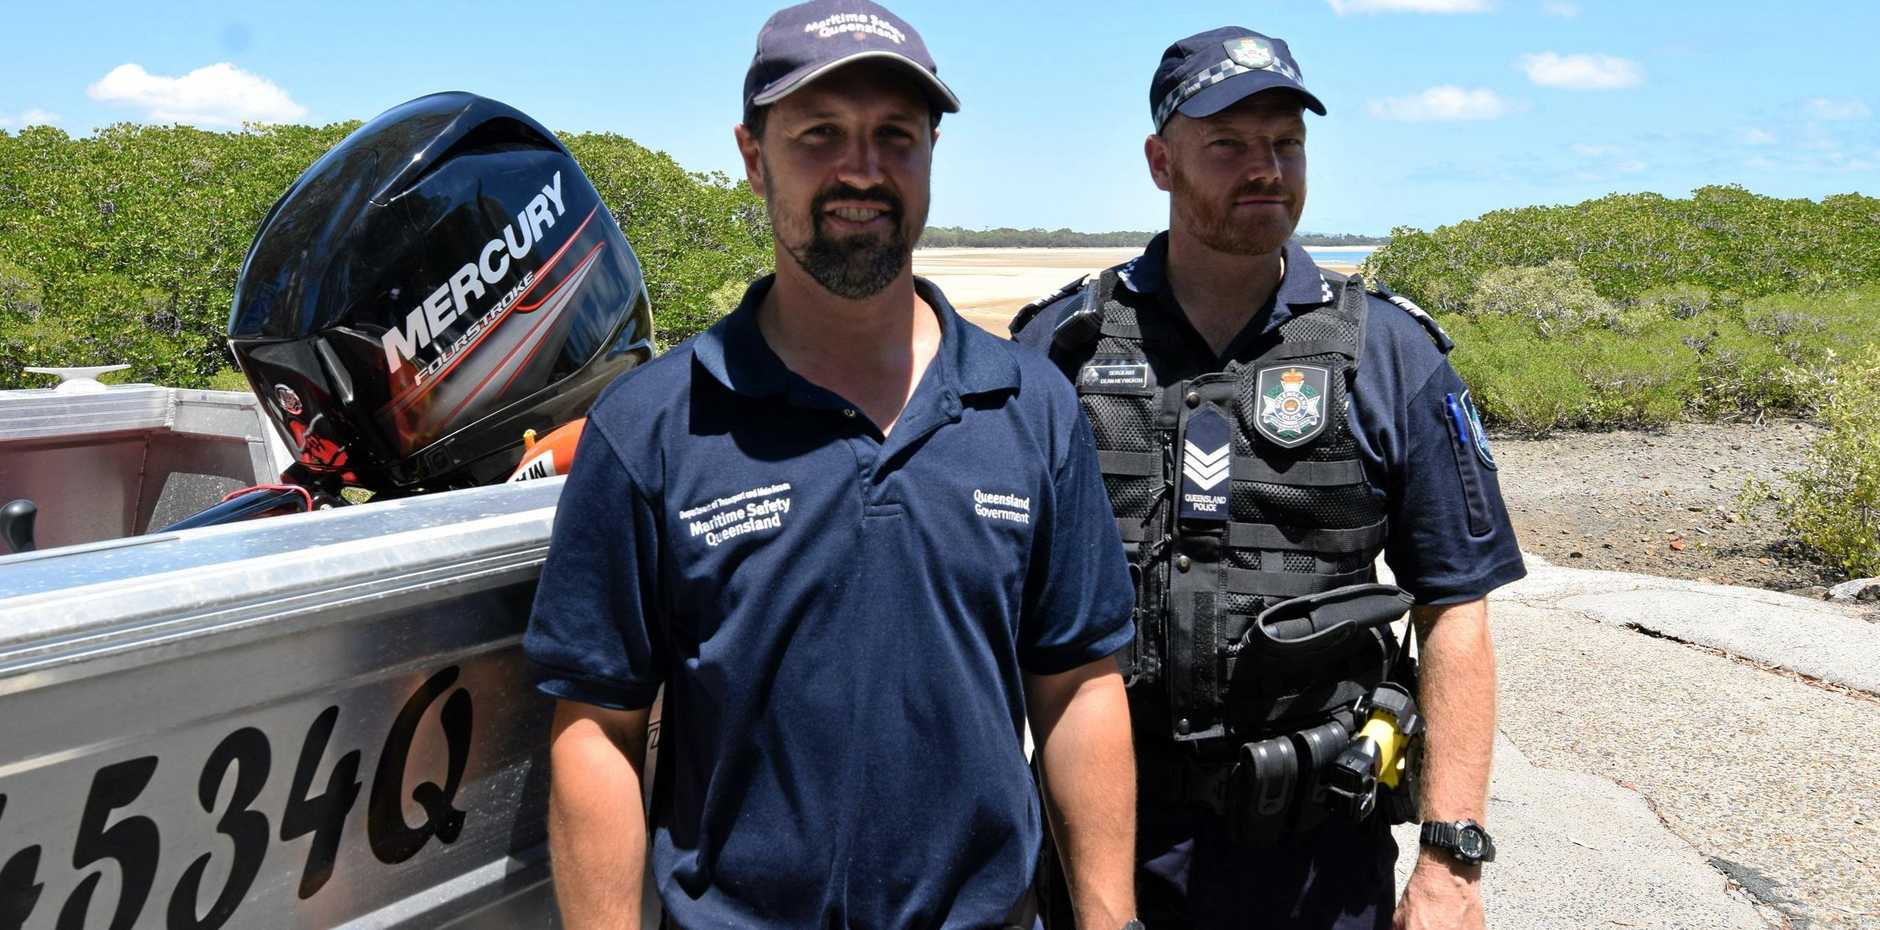 WATER SAFETY: Maritime Officer Nick Vernalls and Sergeant Dean Heyworth are reminding everyone to be careful on the water.